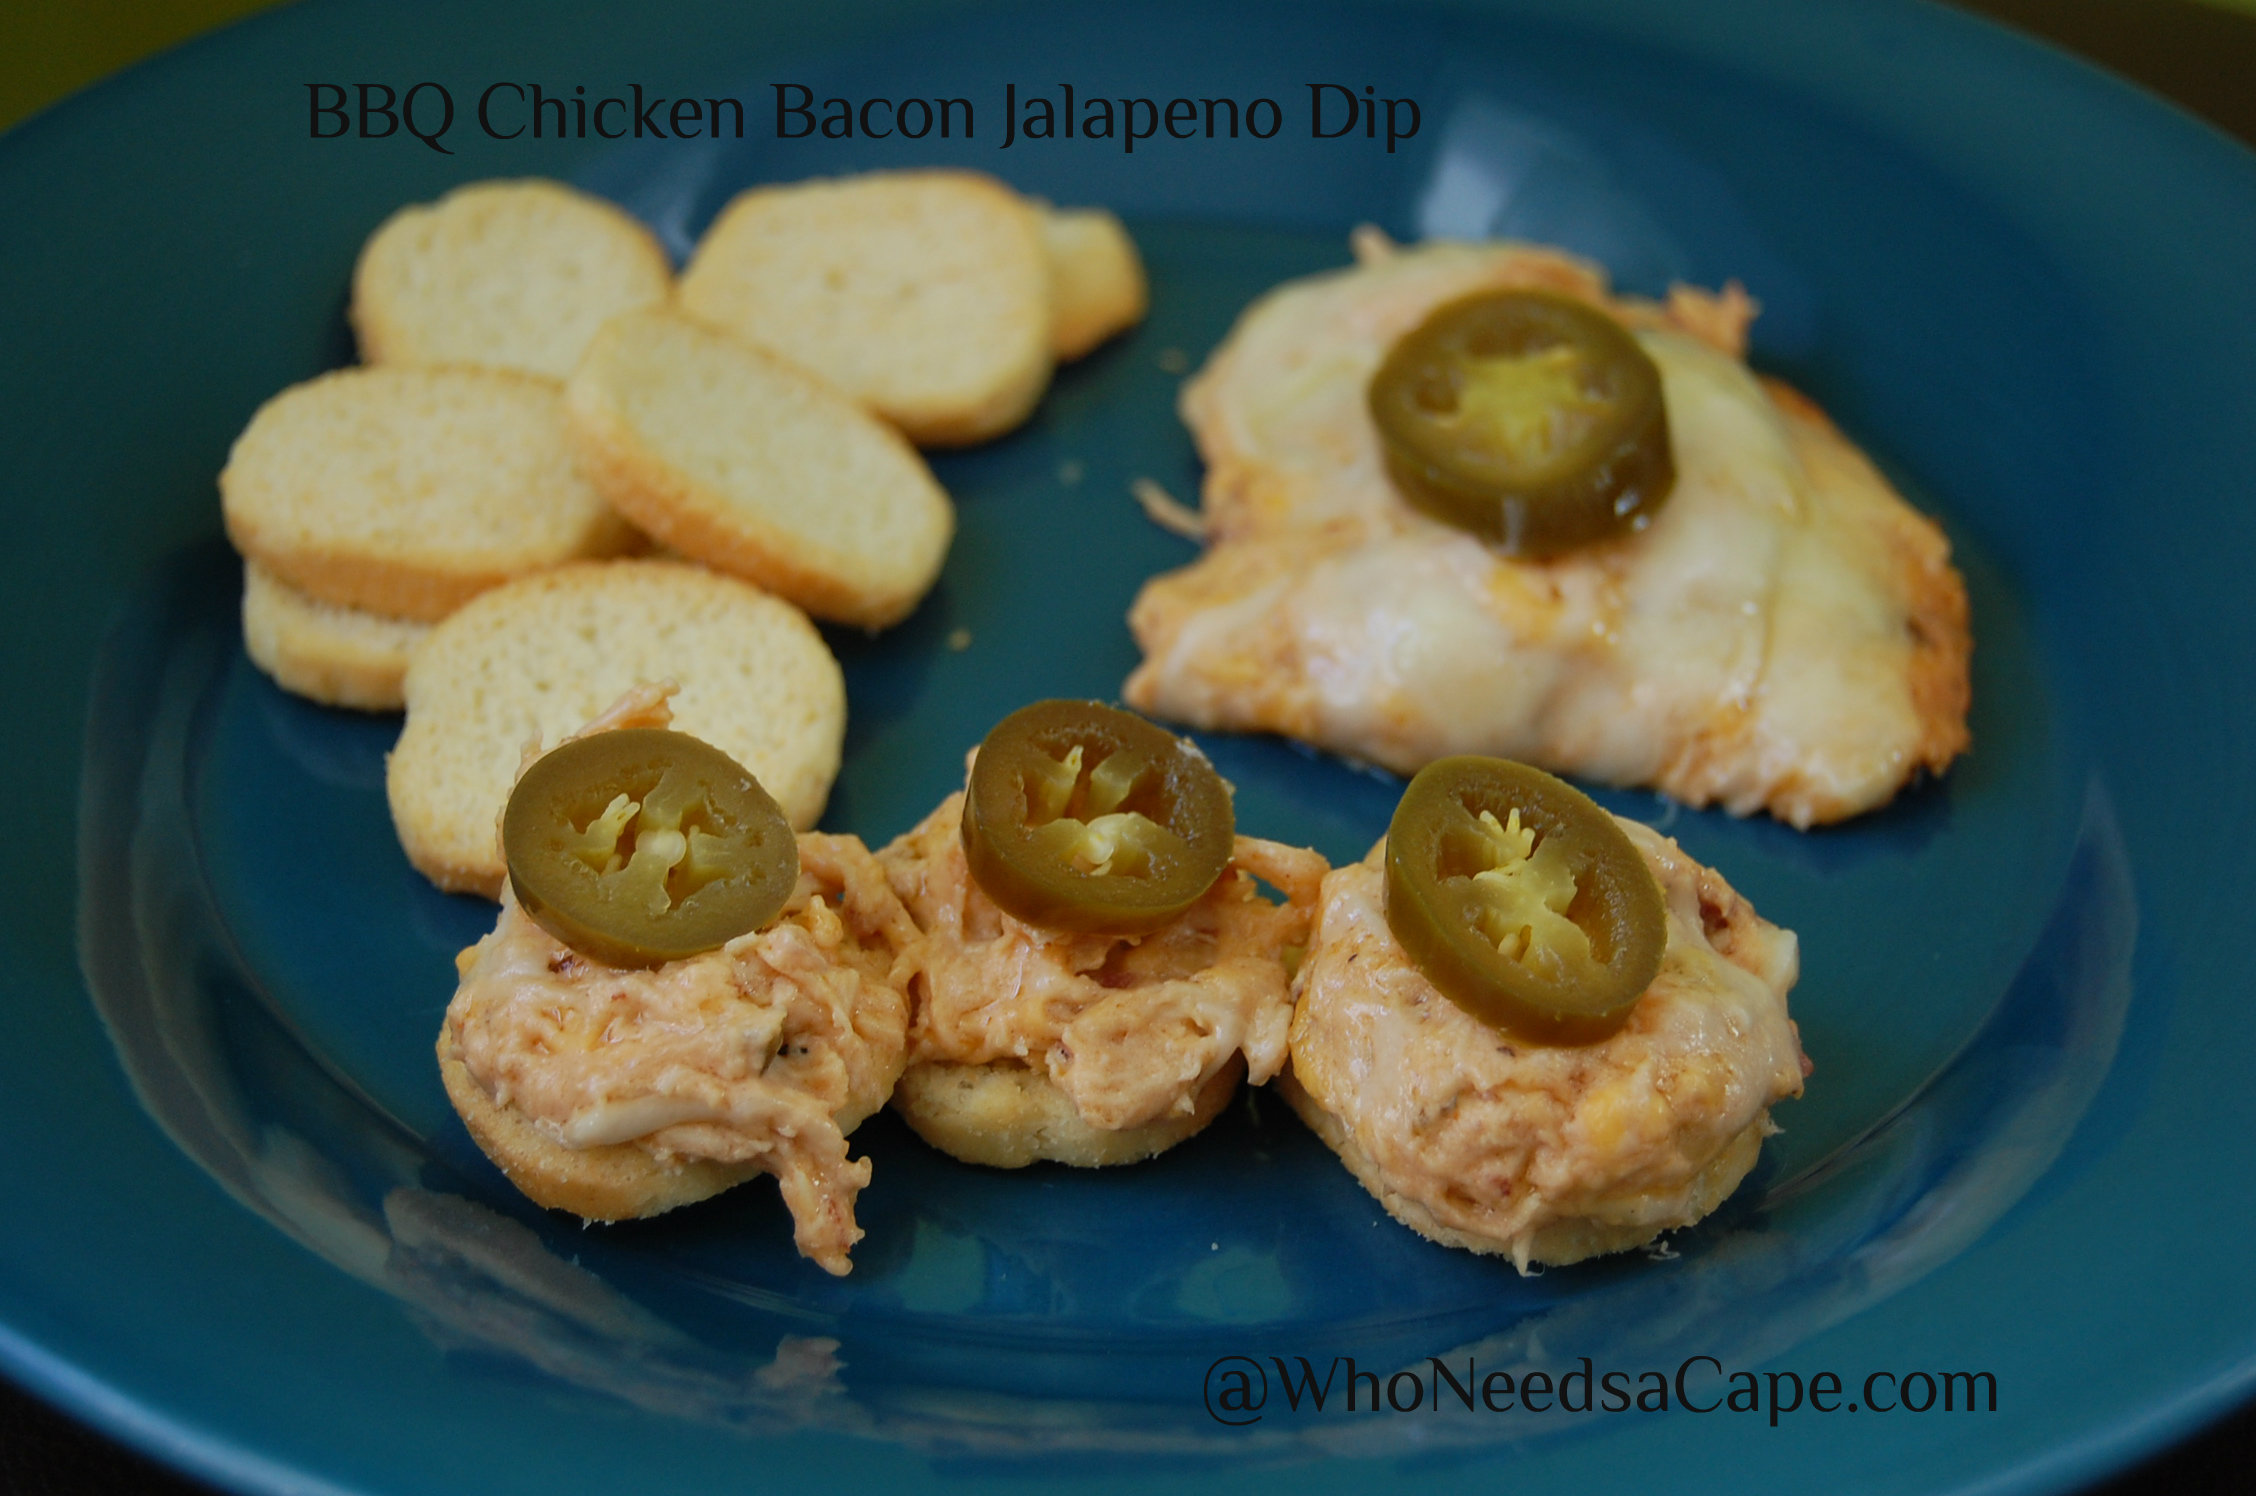 Oh do we have a fantastic dip for your next party of Super Bowl feasting! BBQ Chicken Bacon Jalapeno Dip is flavor-loaded and so delicious!